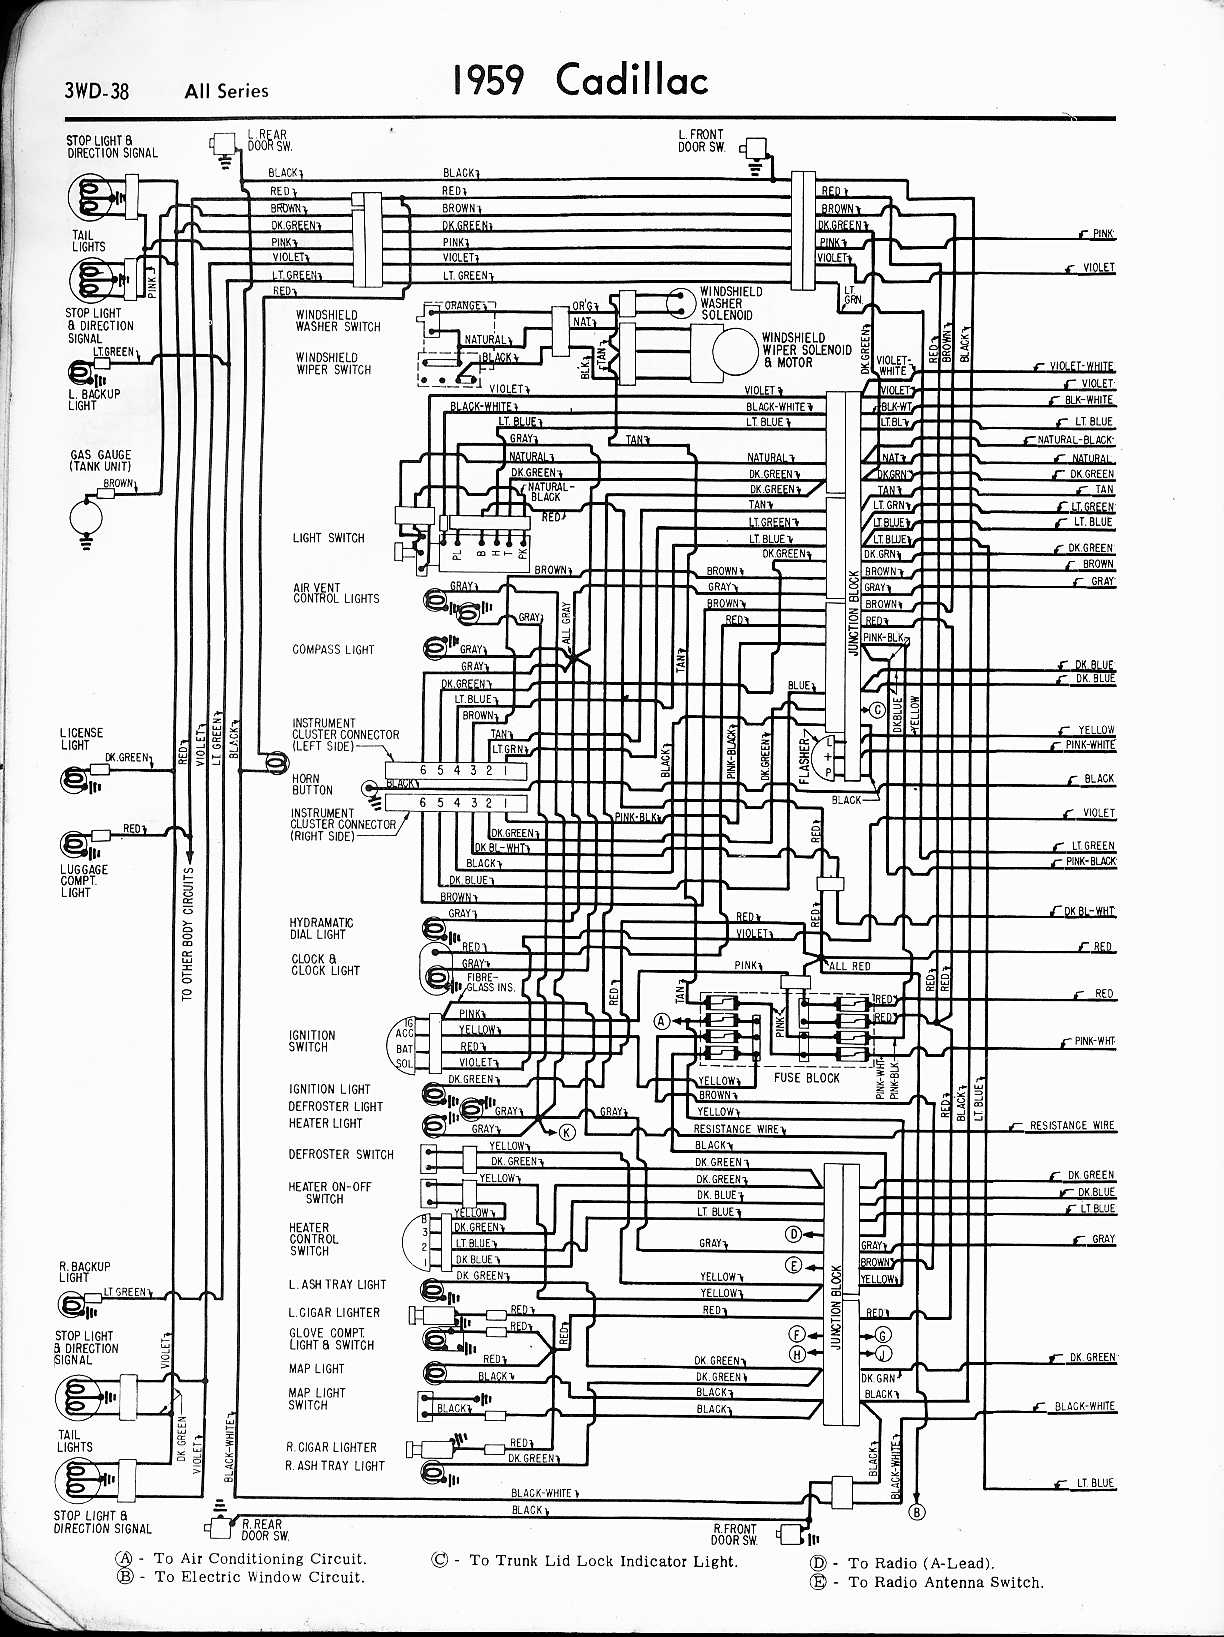 cadillac wiring diagrams 1957 1965 rh oldcarmanualproject com 1971 Cadillac Vacuum Diagram 1976 Cadillac Vacuum Diagram